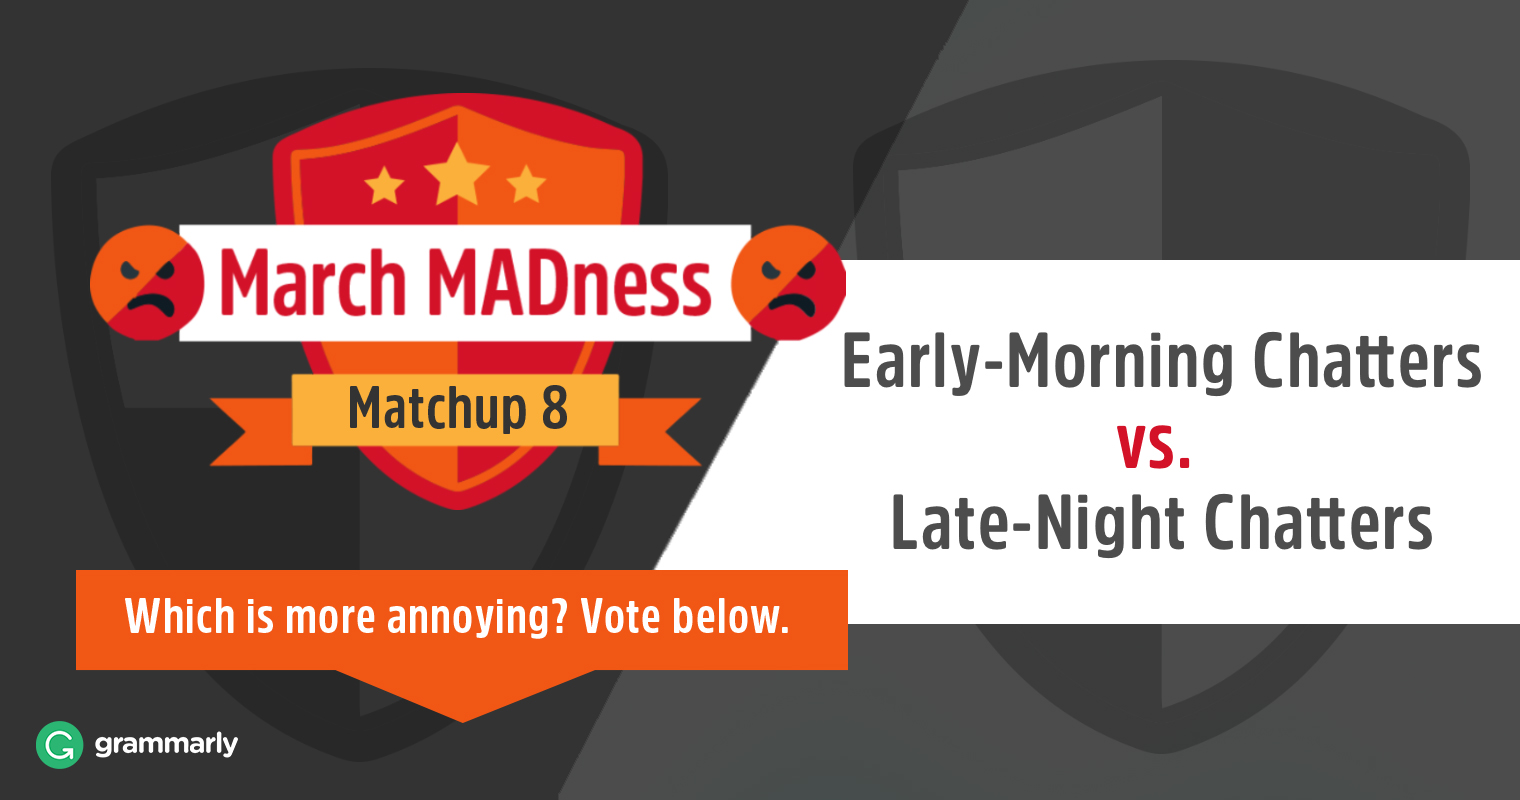 March MADness: Early-Morning Chatters vs. Late-Night Chatters image